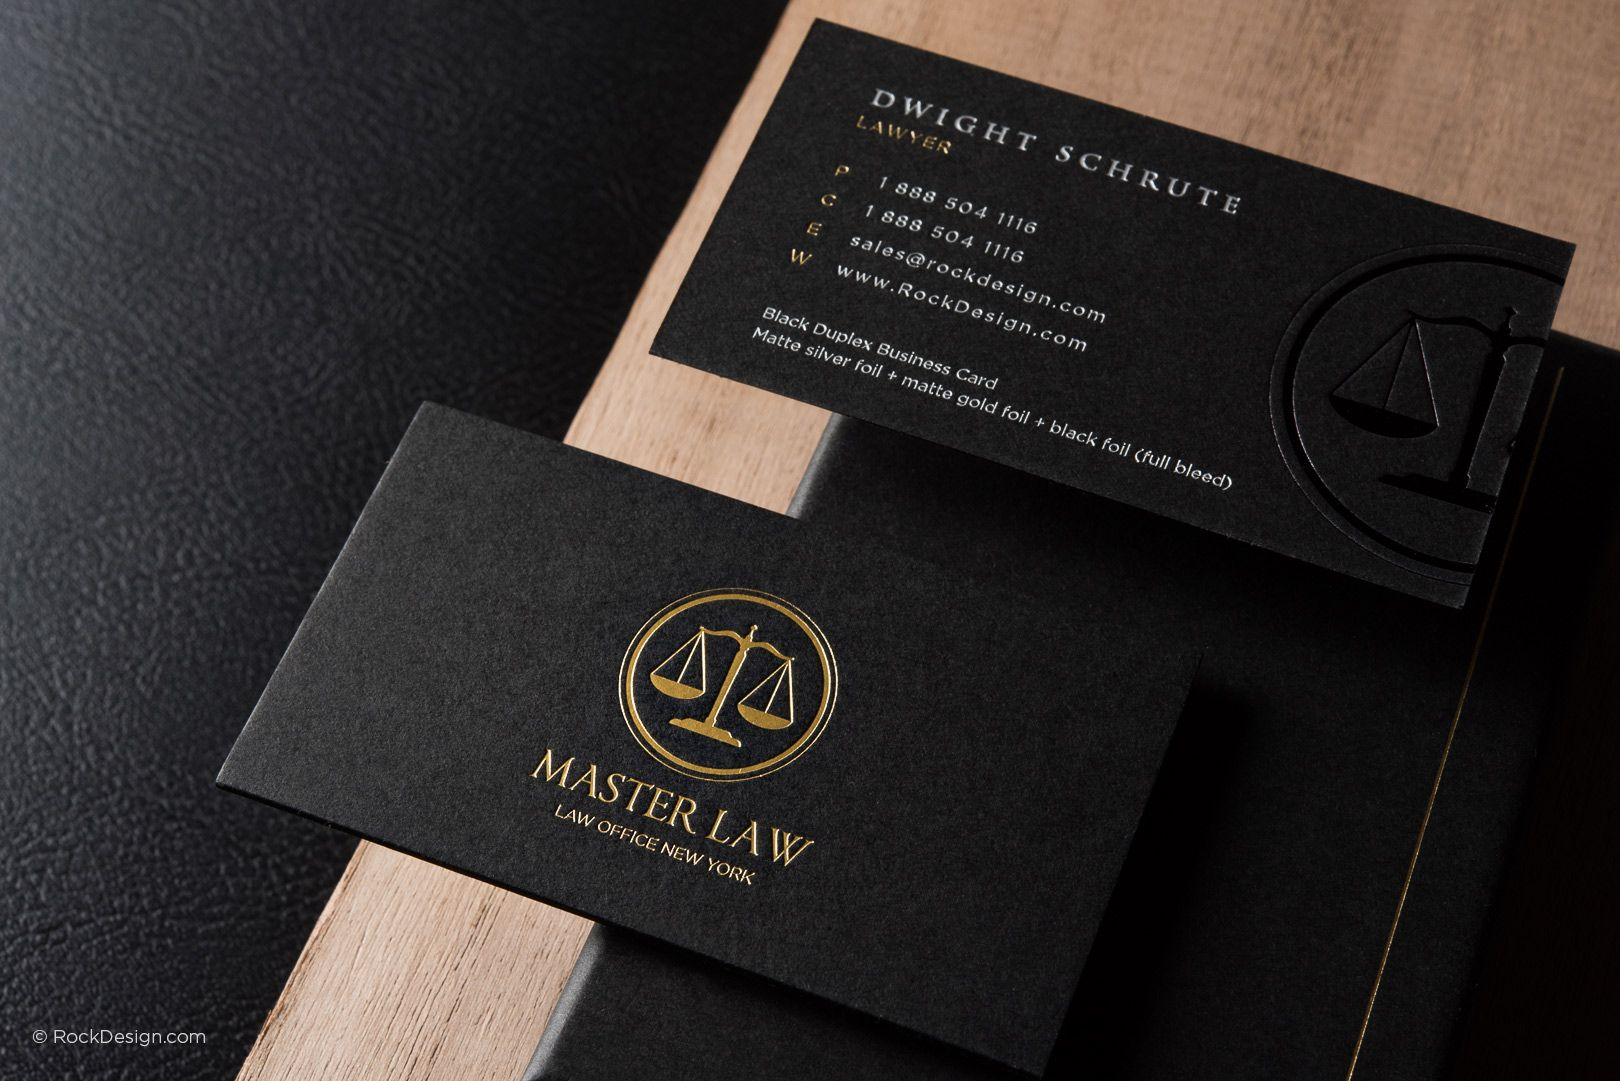 Classic modern black duplex attorney business card template classic modern black duplex attorney business card template master law rockdesign luxury business card magicingreecefo Images